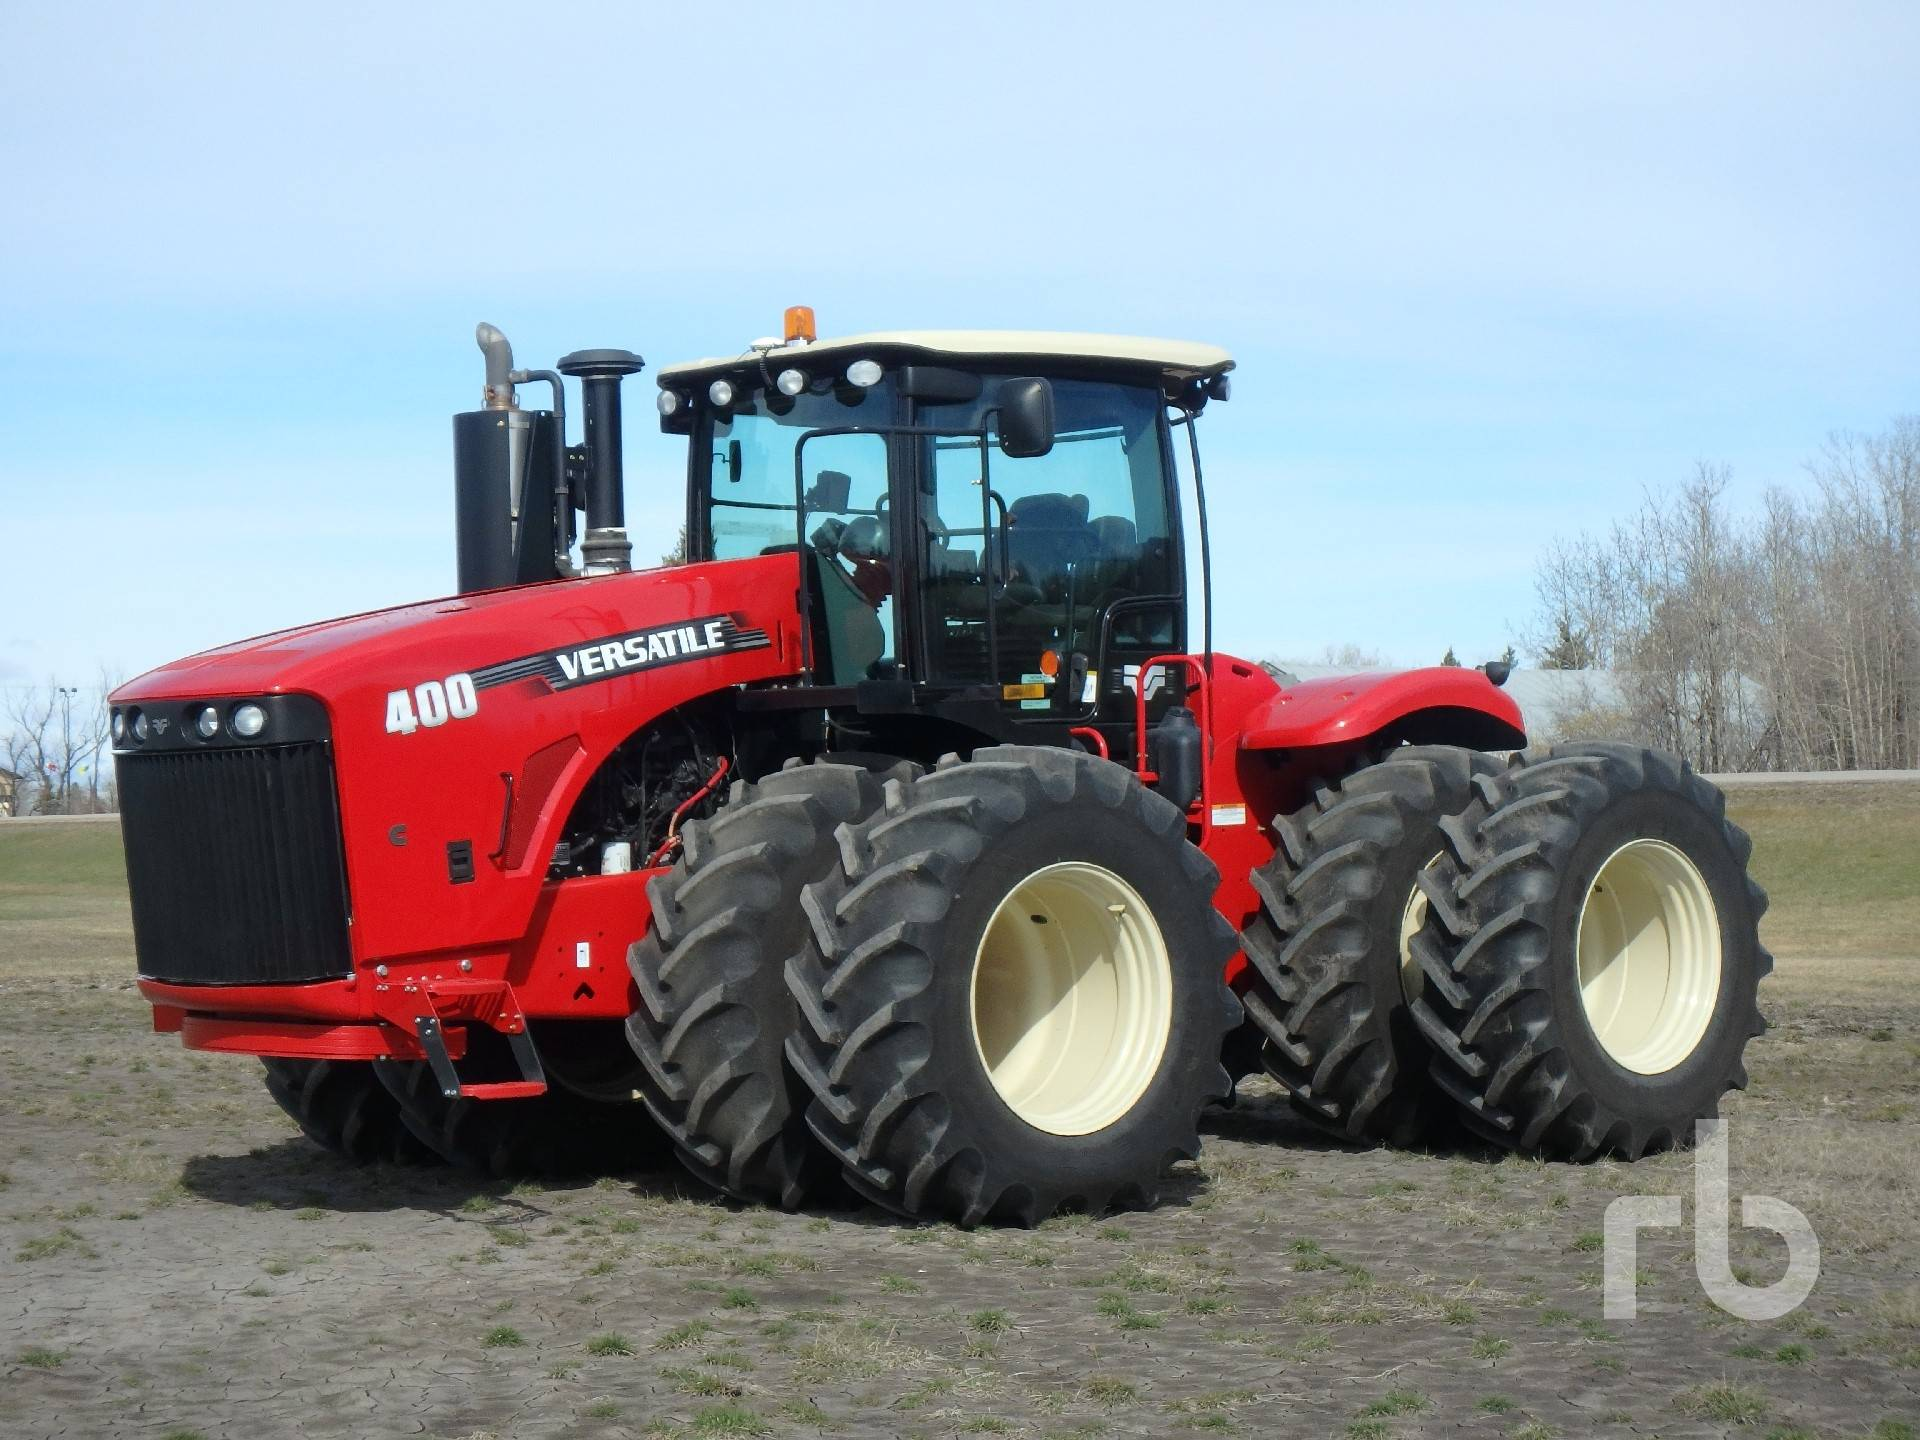 Versatile 400 sold on SK Auction